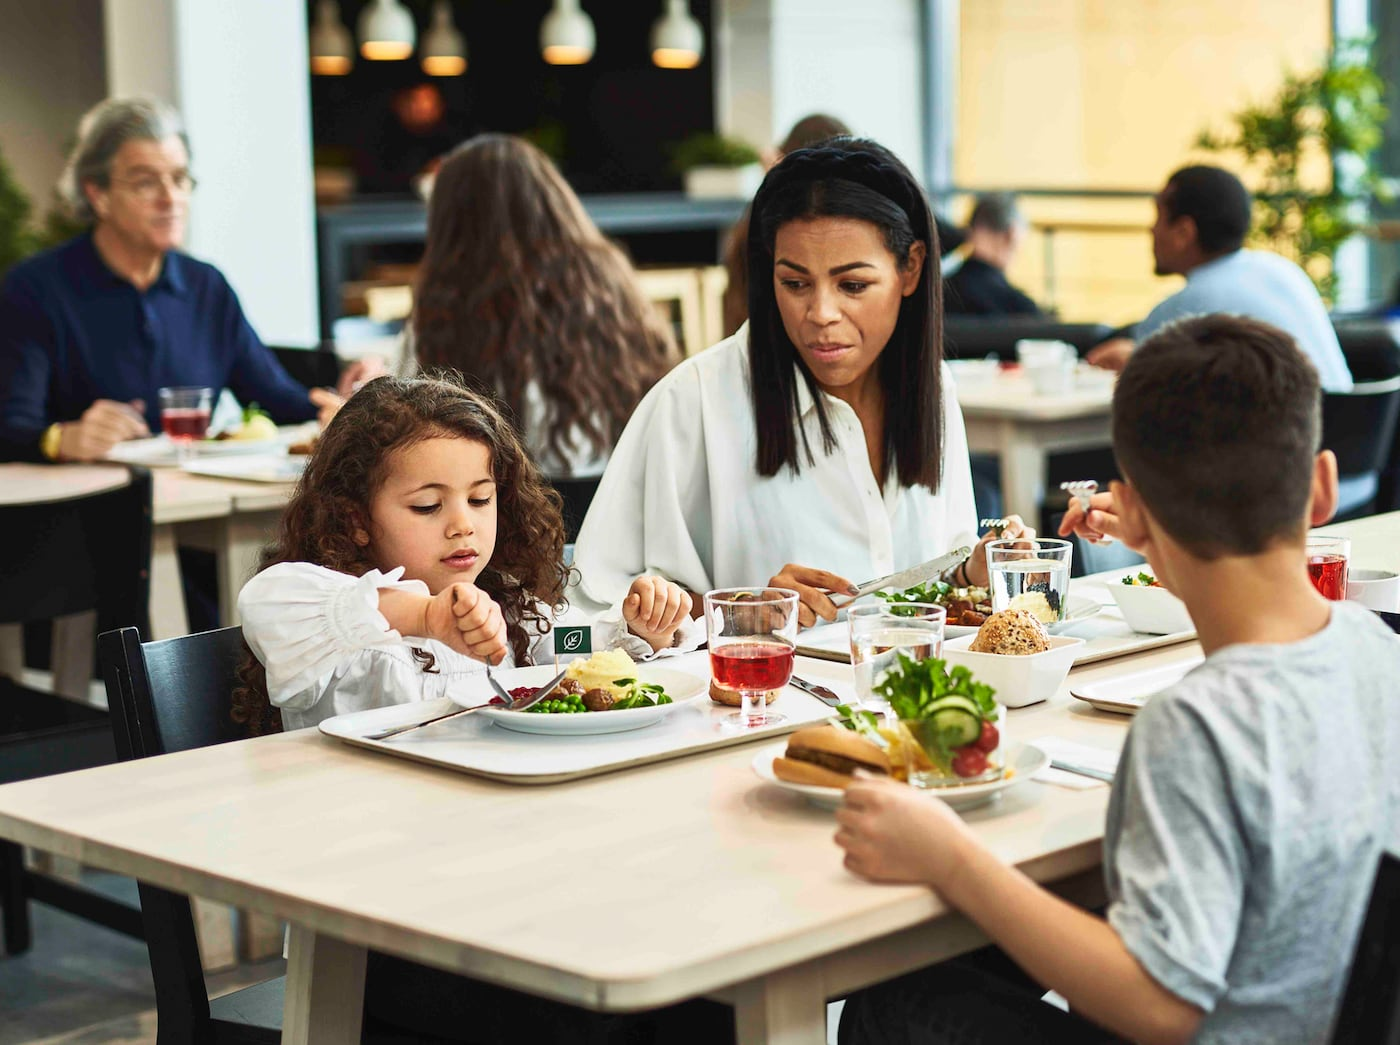 A woman is sitting at a table with her two children in an IKEA Restaurant. They are eating sustainable meals.